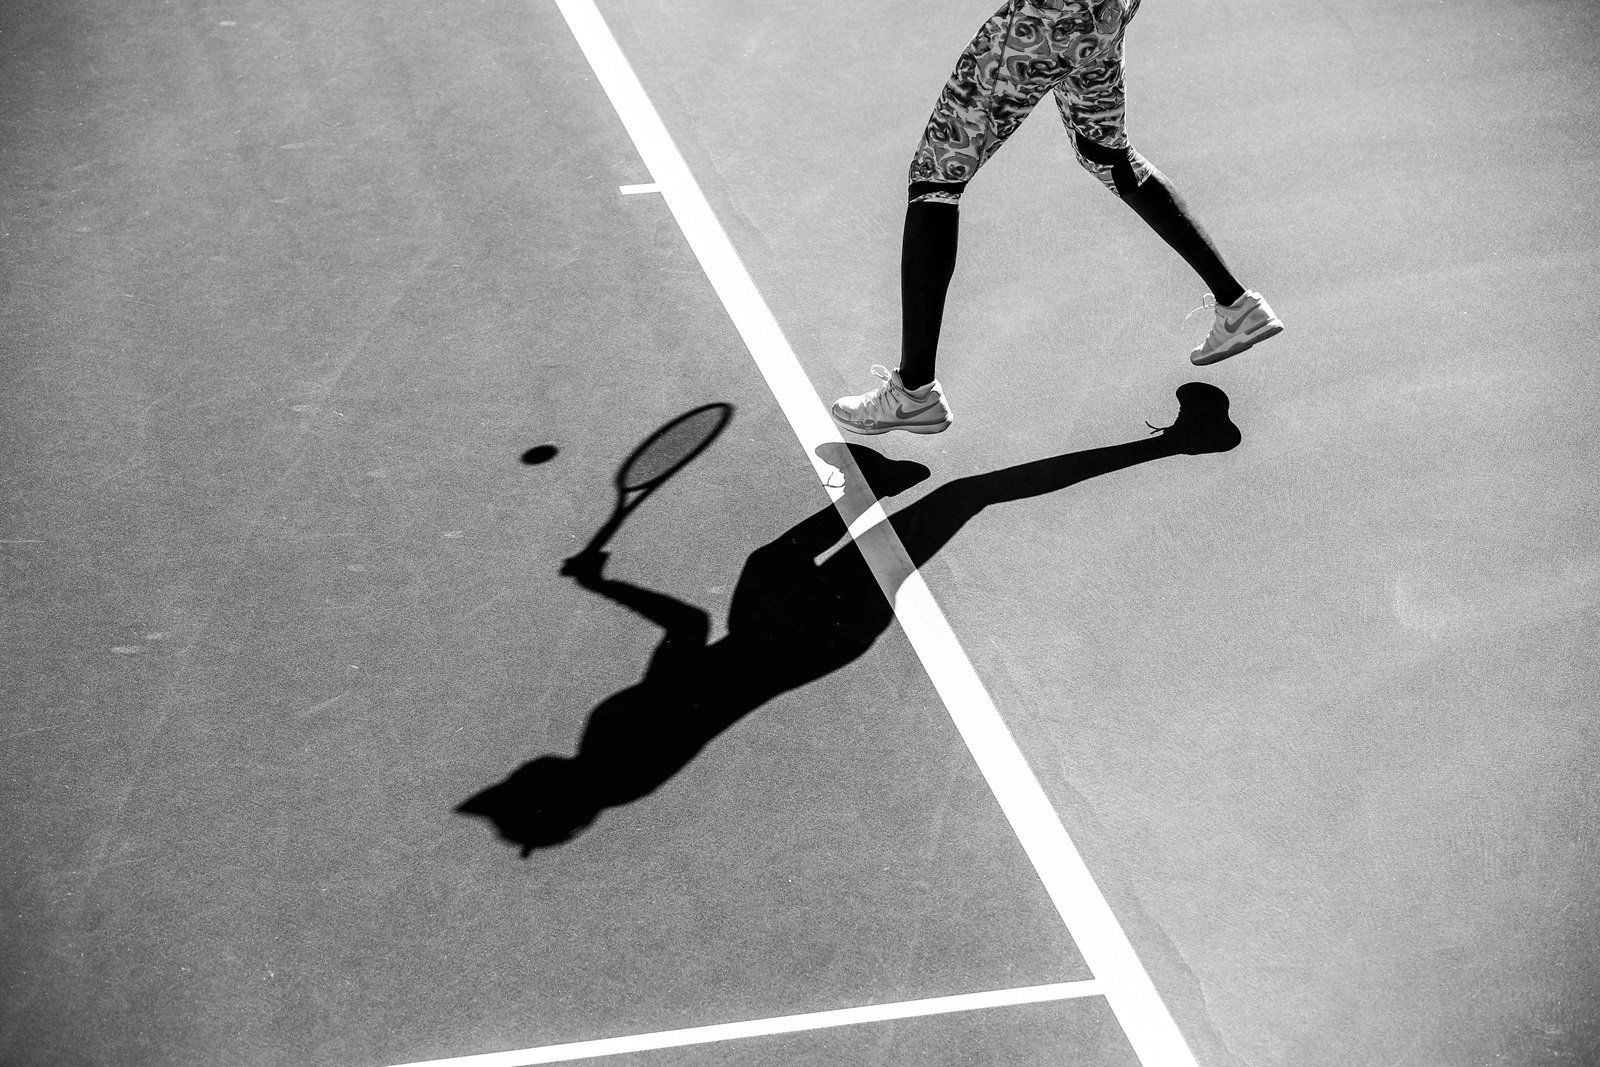 Best Pics From the BNP Paribas Open